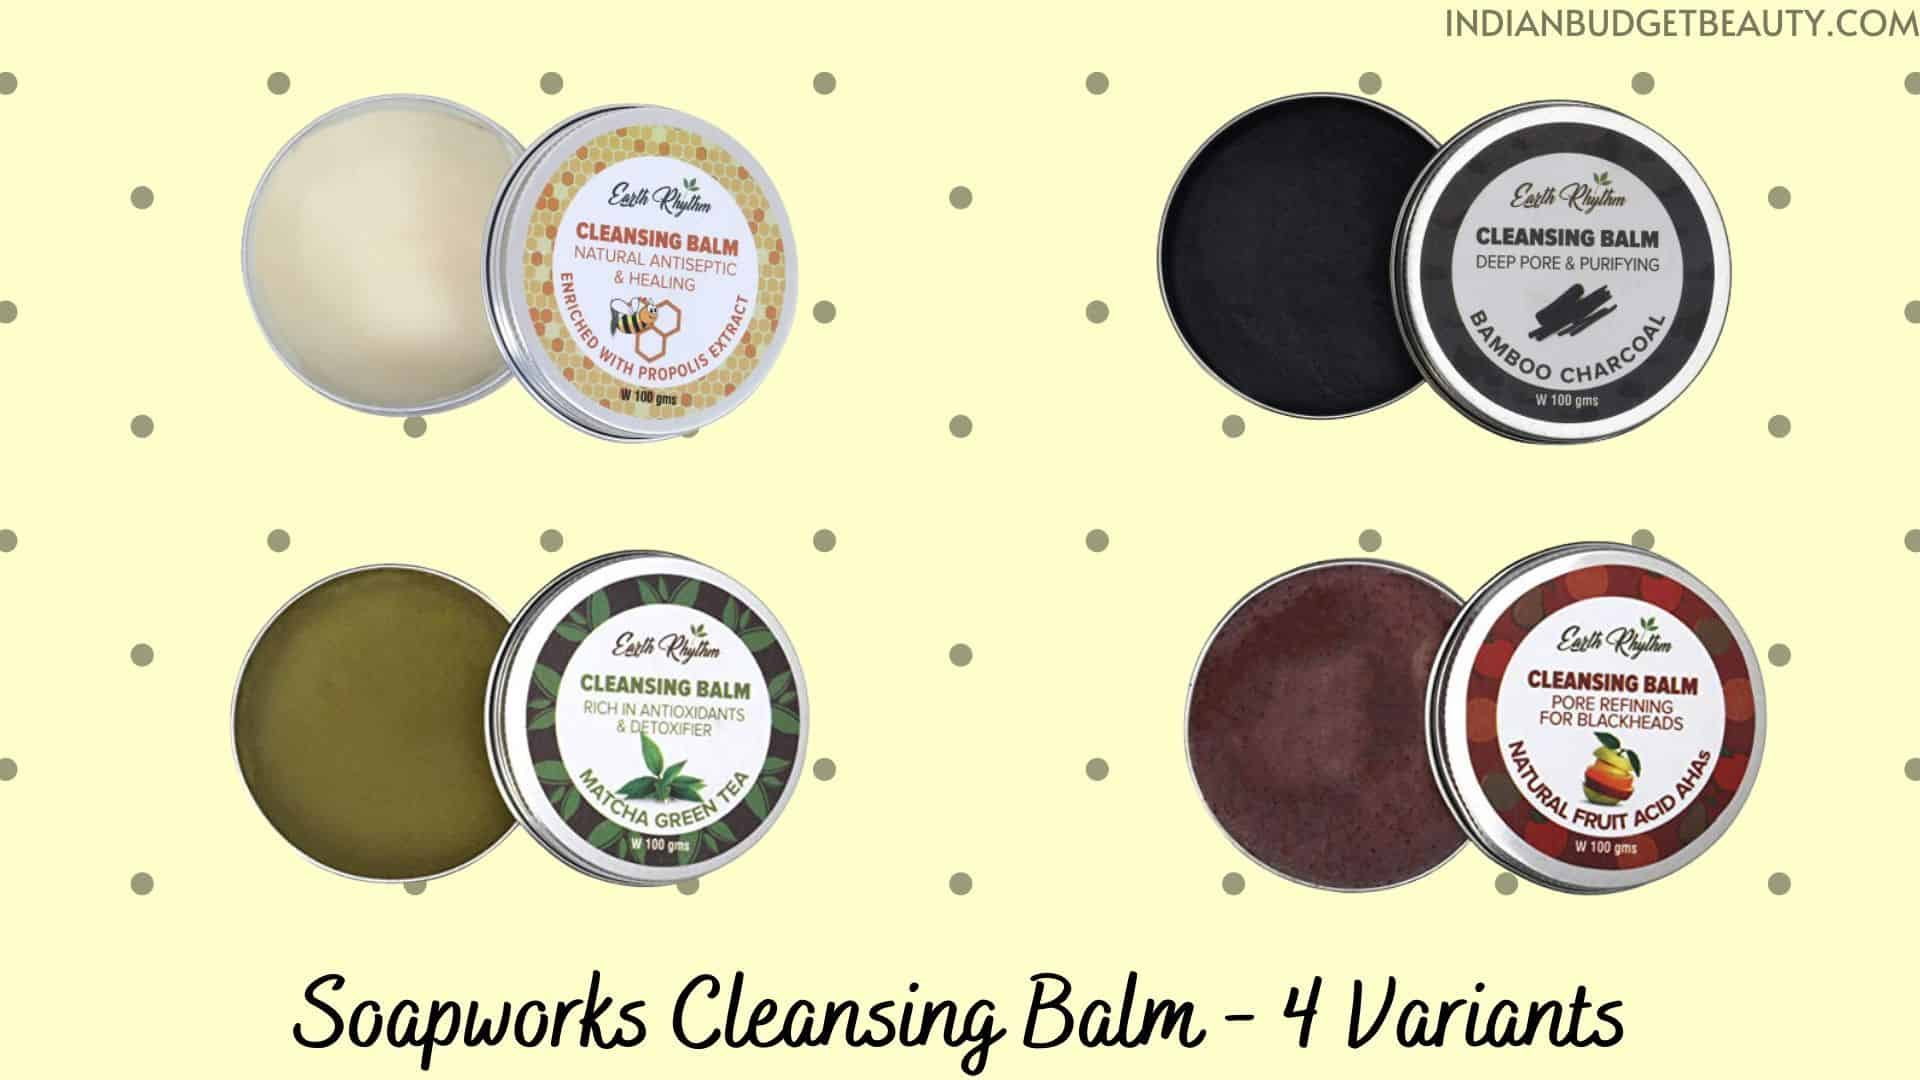 Soapworks Cleansing Balm review | best cleansing balm in india